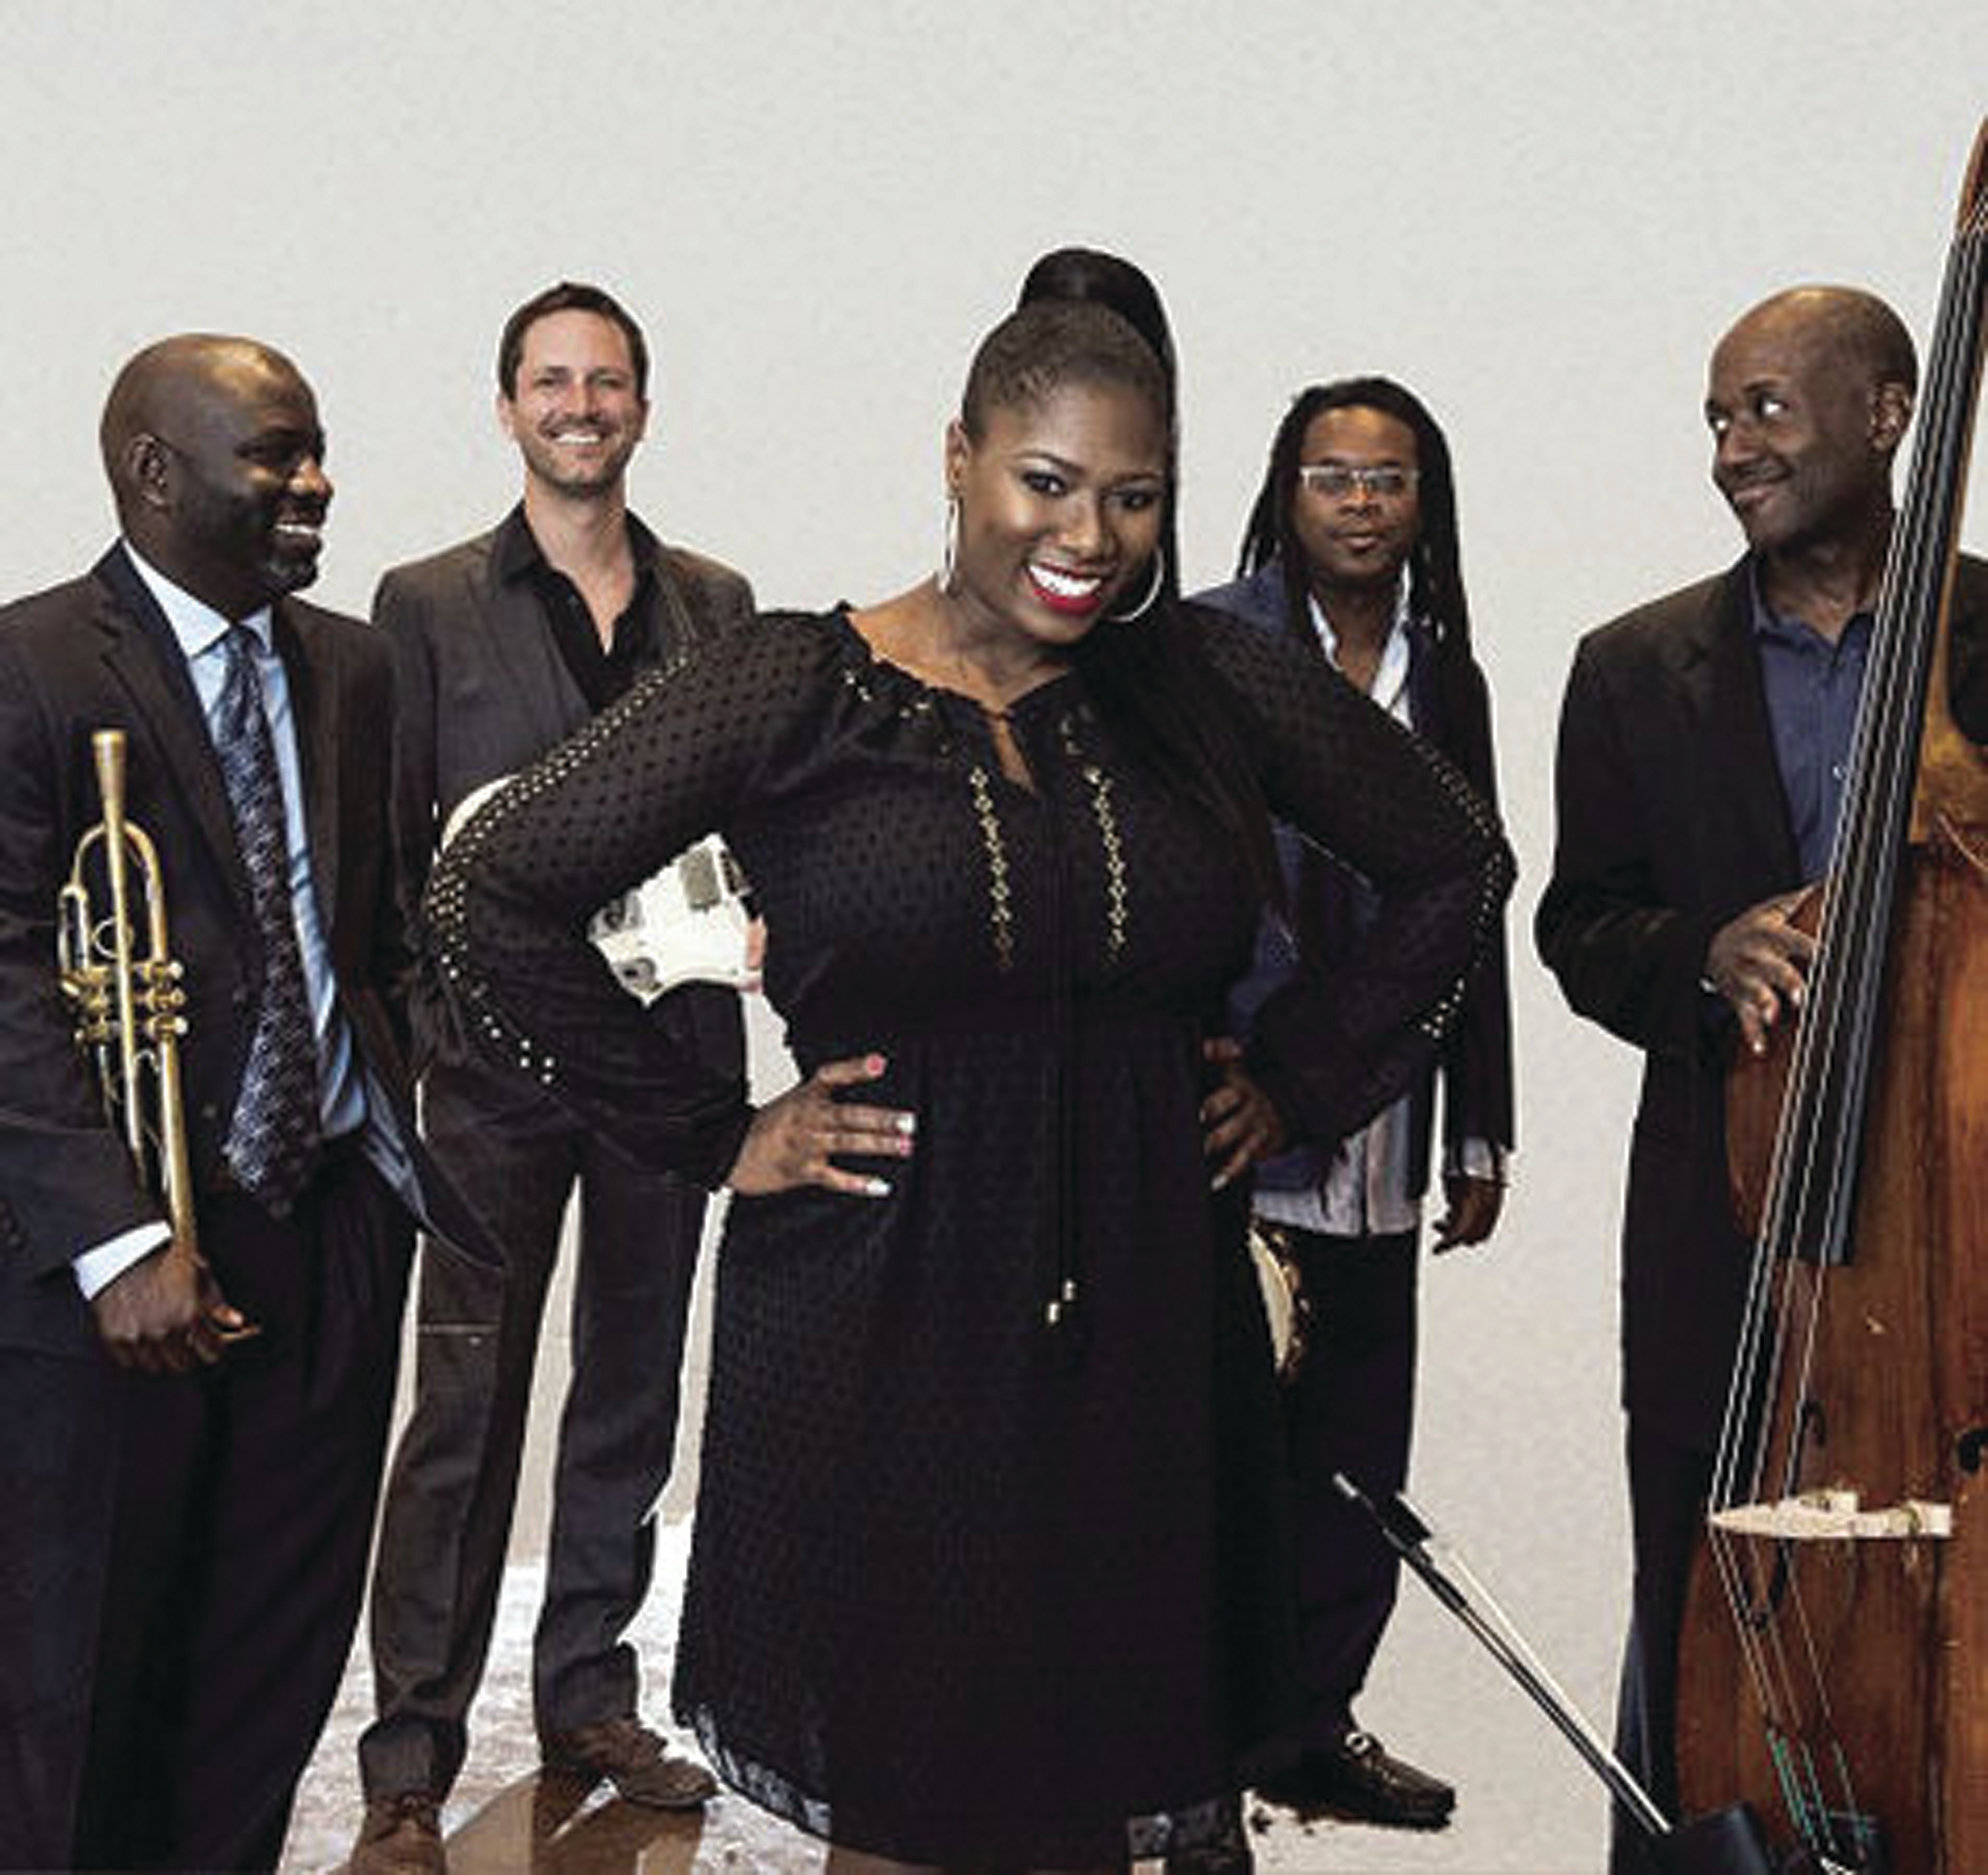 Charleston band Ranky Tanky is known for its jazz arrangements of traditional Gullah spirituals. The first CD by the band formed in October 2017 reached No. 1 on the Billboard jazz chart in February. The group will perform on Friday at the Opera House.